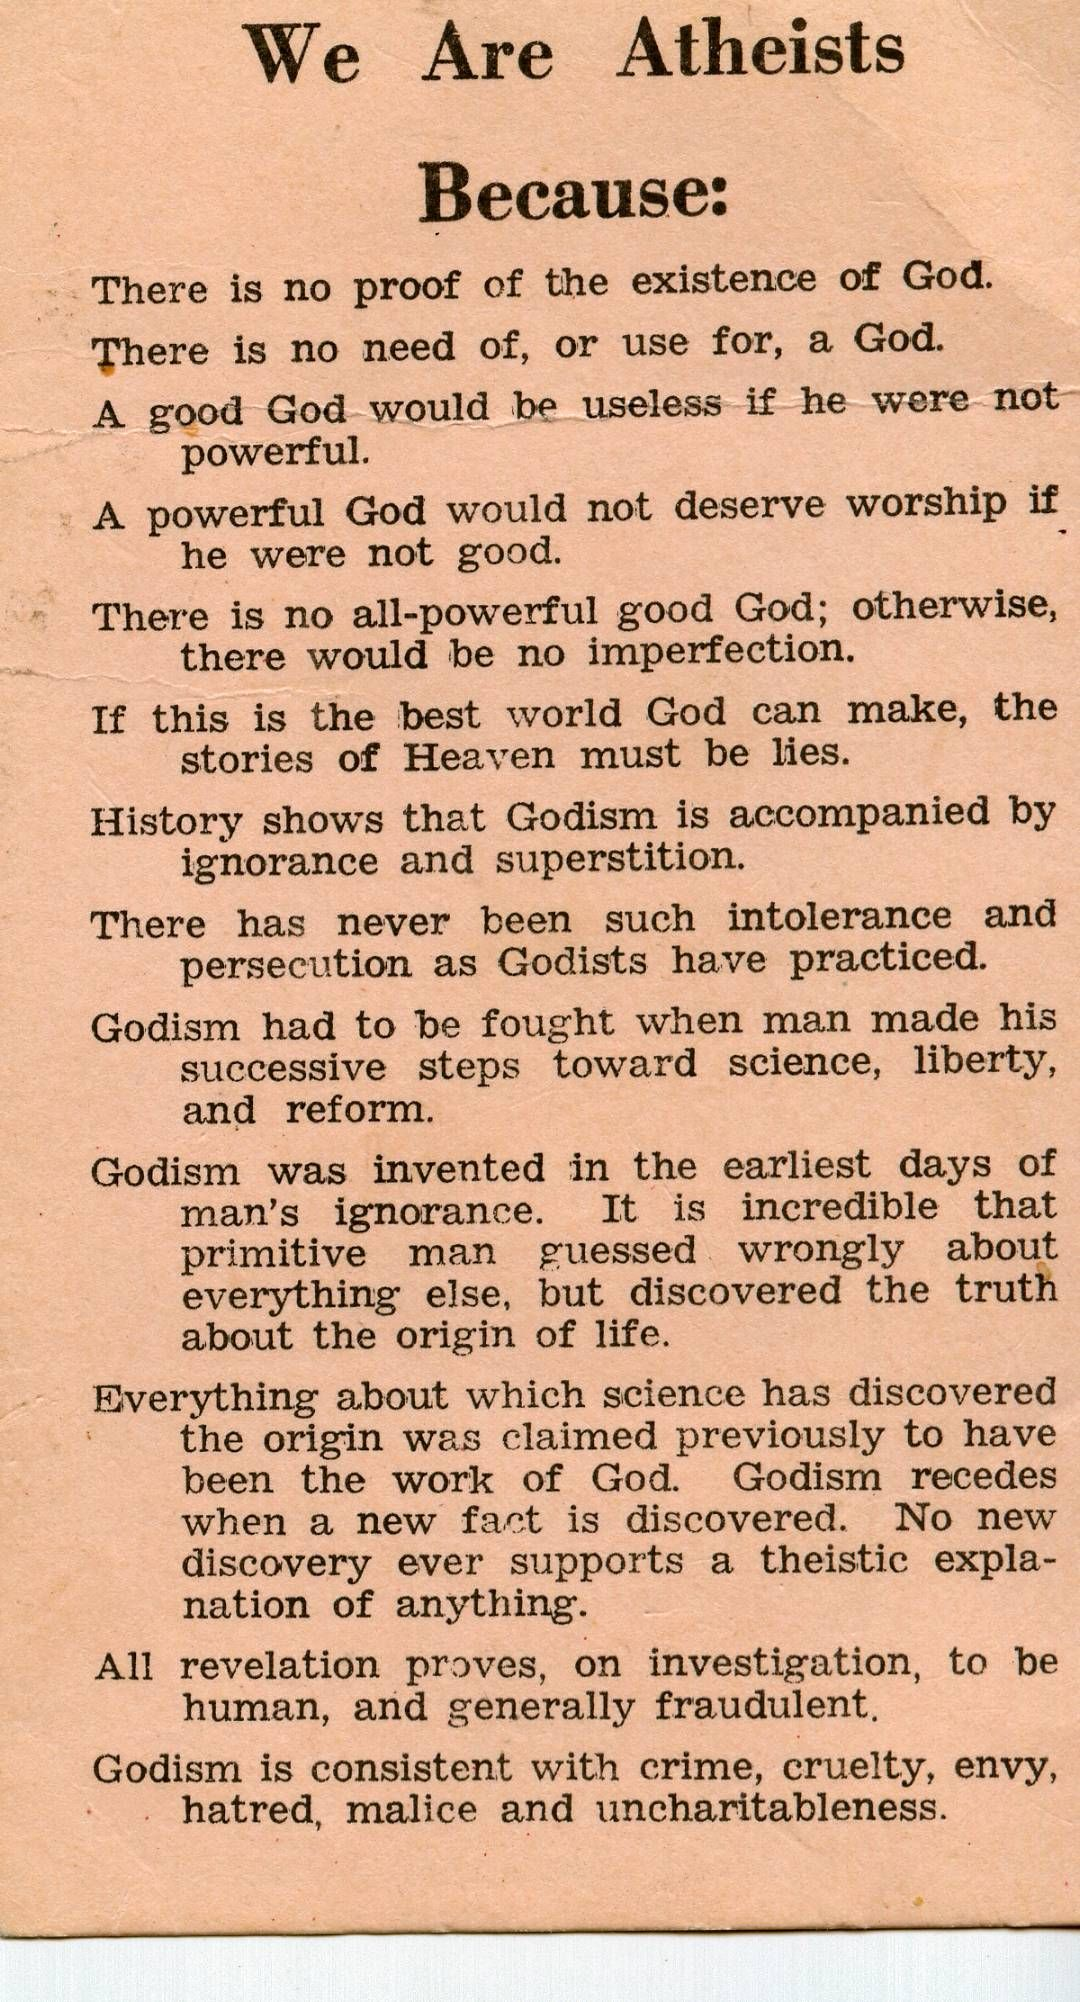 We are athiests because we have evaluated the evidence and found it missing, and studied the history of humans and seen the transitions of one myth to another.  We have seen the creation of and use of religious myth and legend by leaders in order to keep control of those they rule.